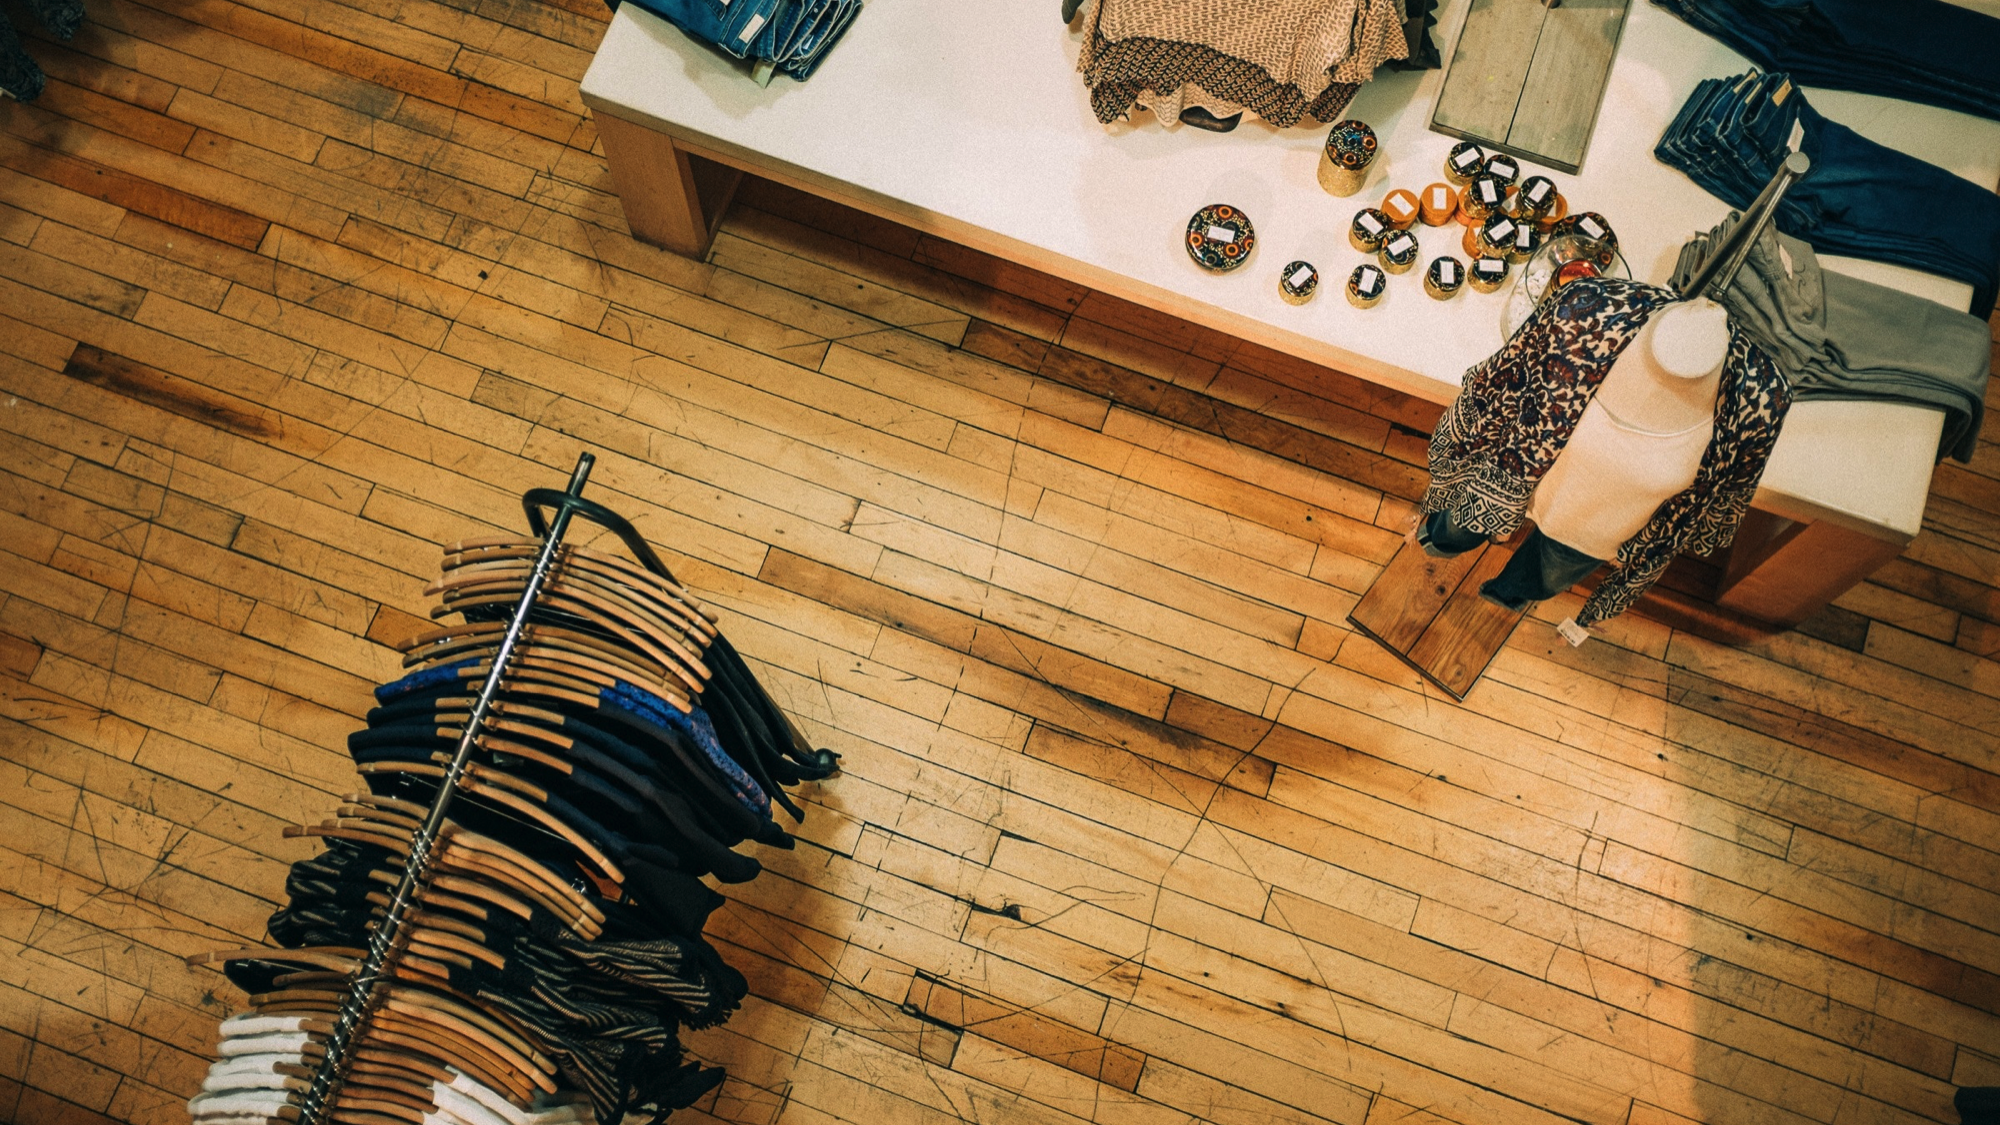 Optimizing Store Operations in the Digital Transformation